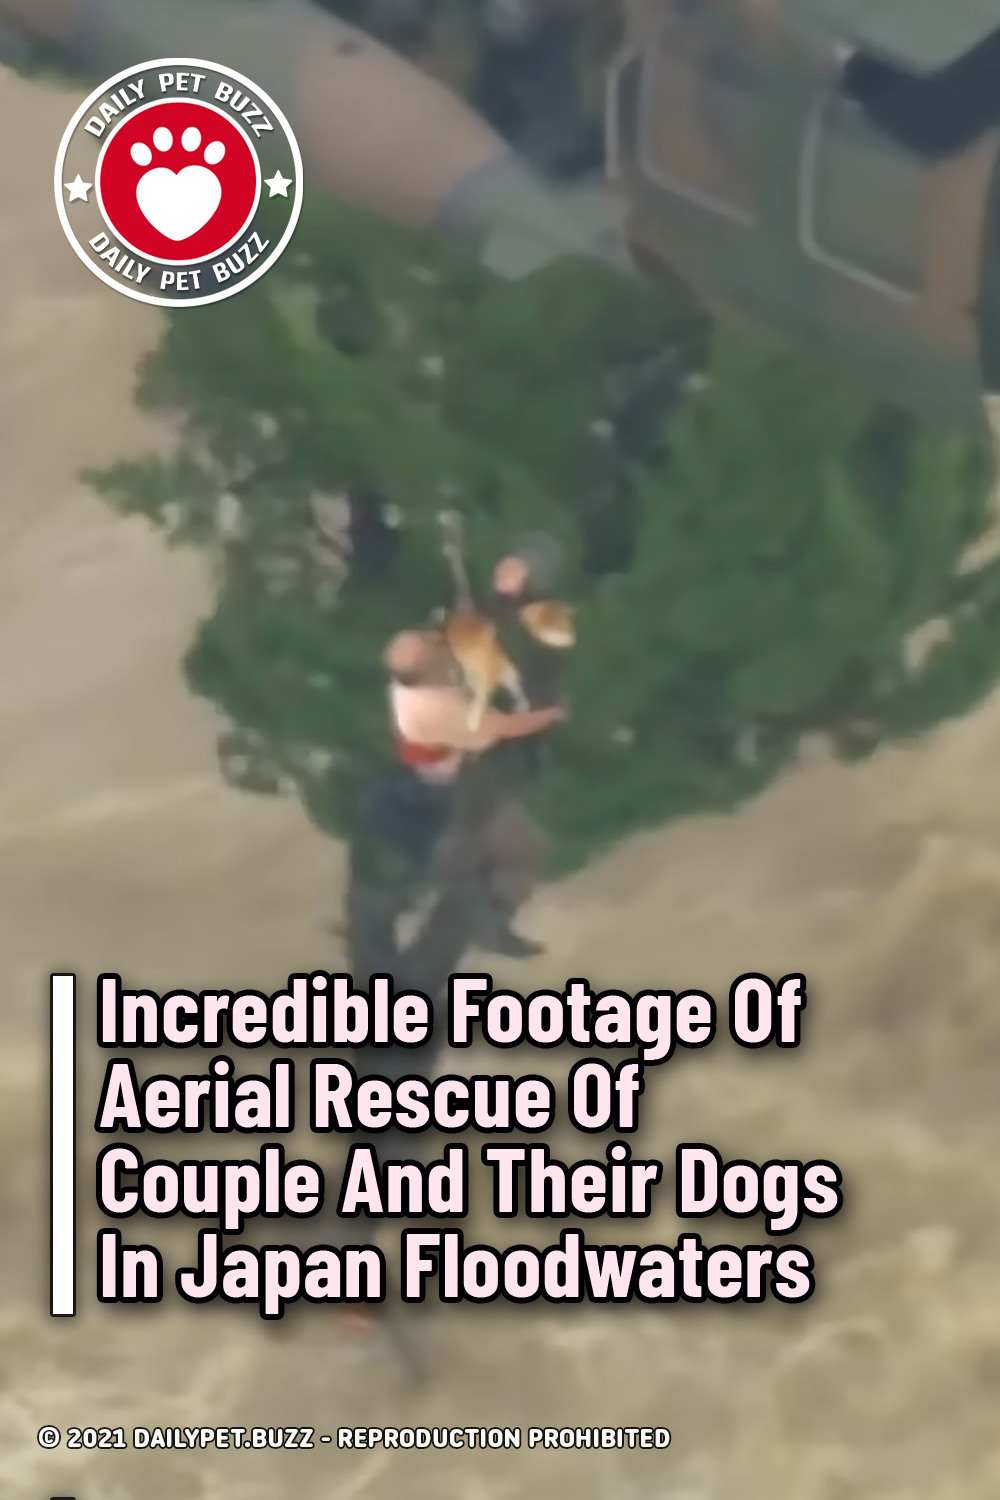 Incredible Footage Of Aerial Rescue Of Couple And Their Dogs In Japan Floodwaters